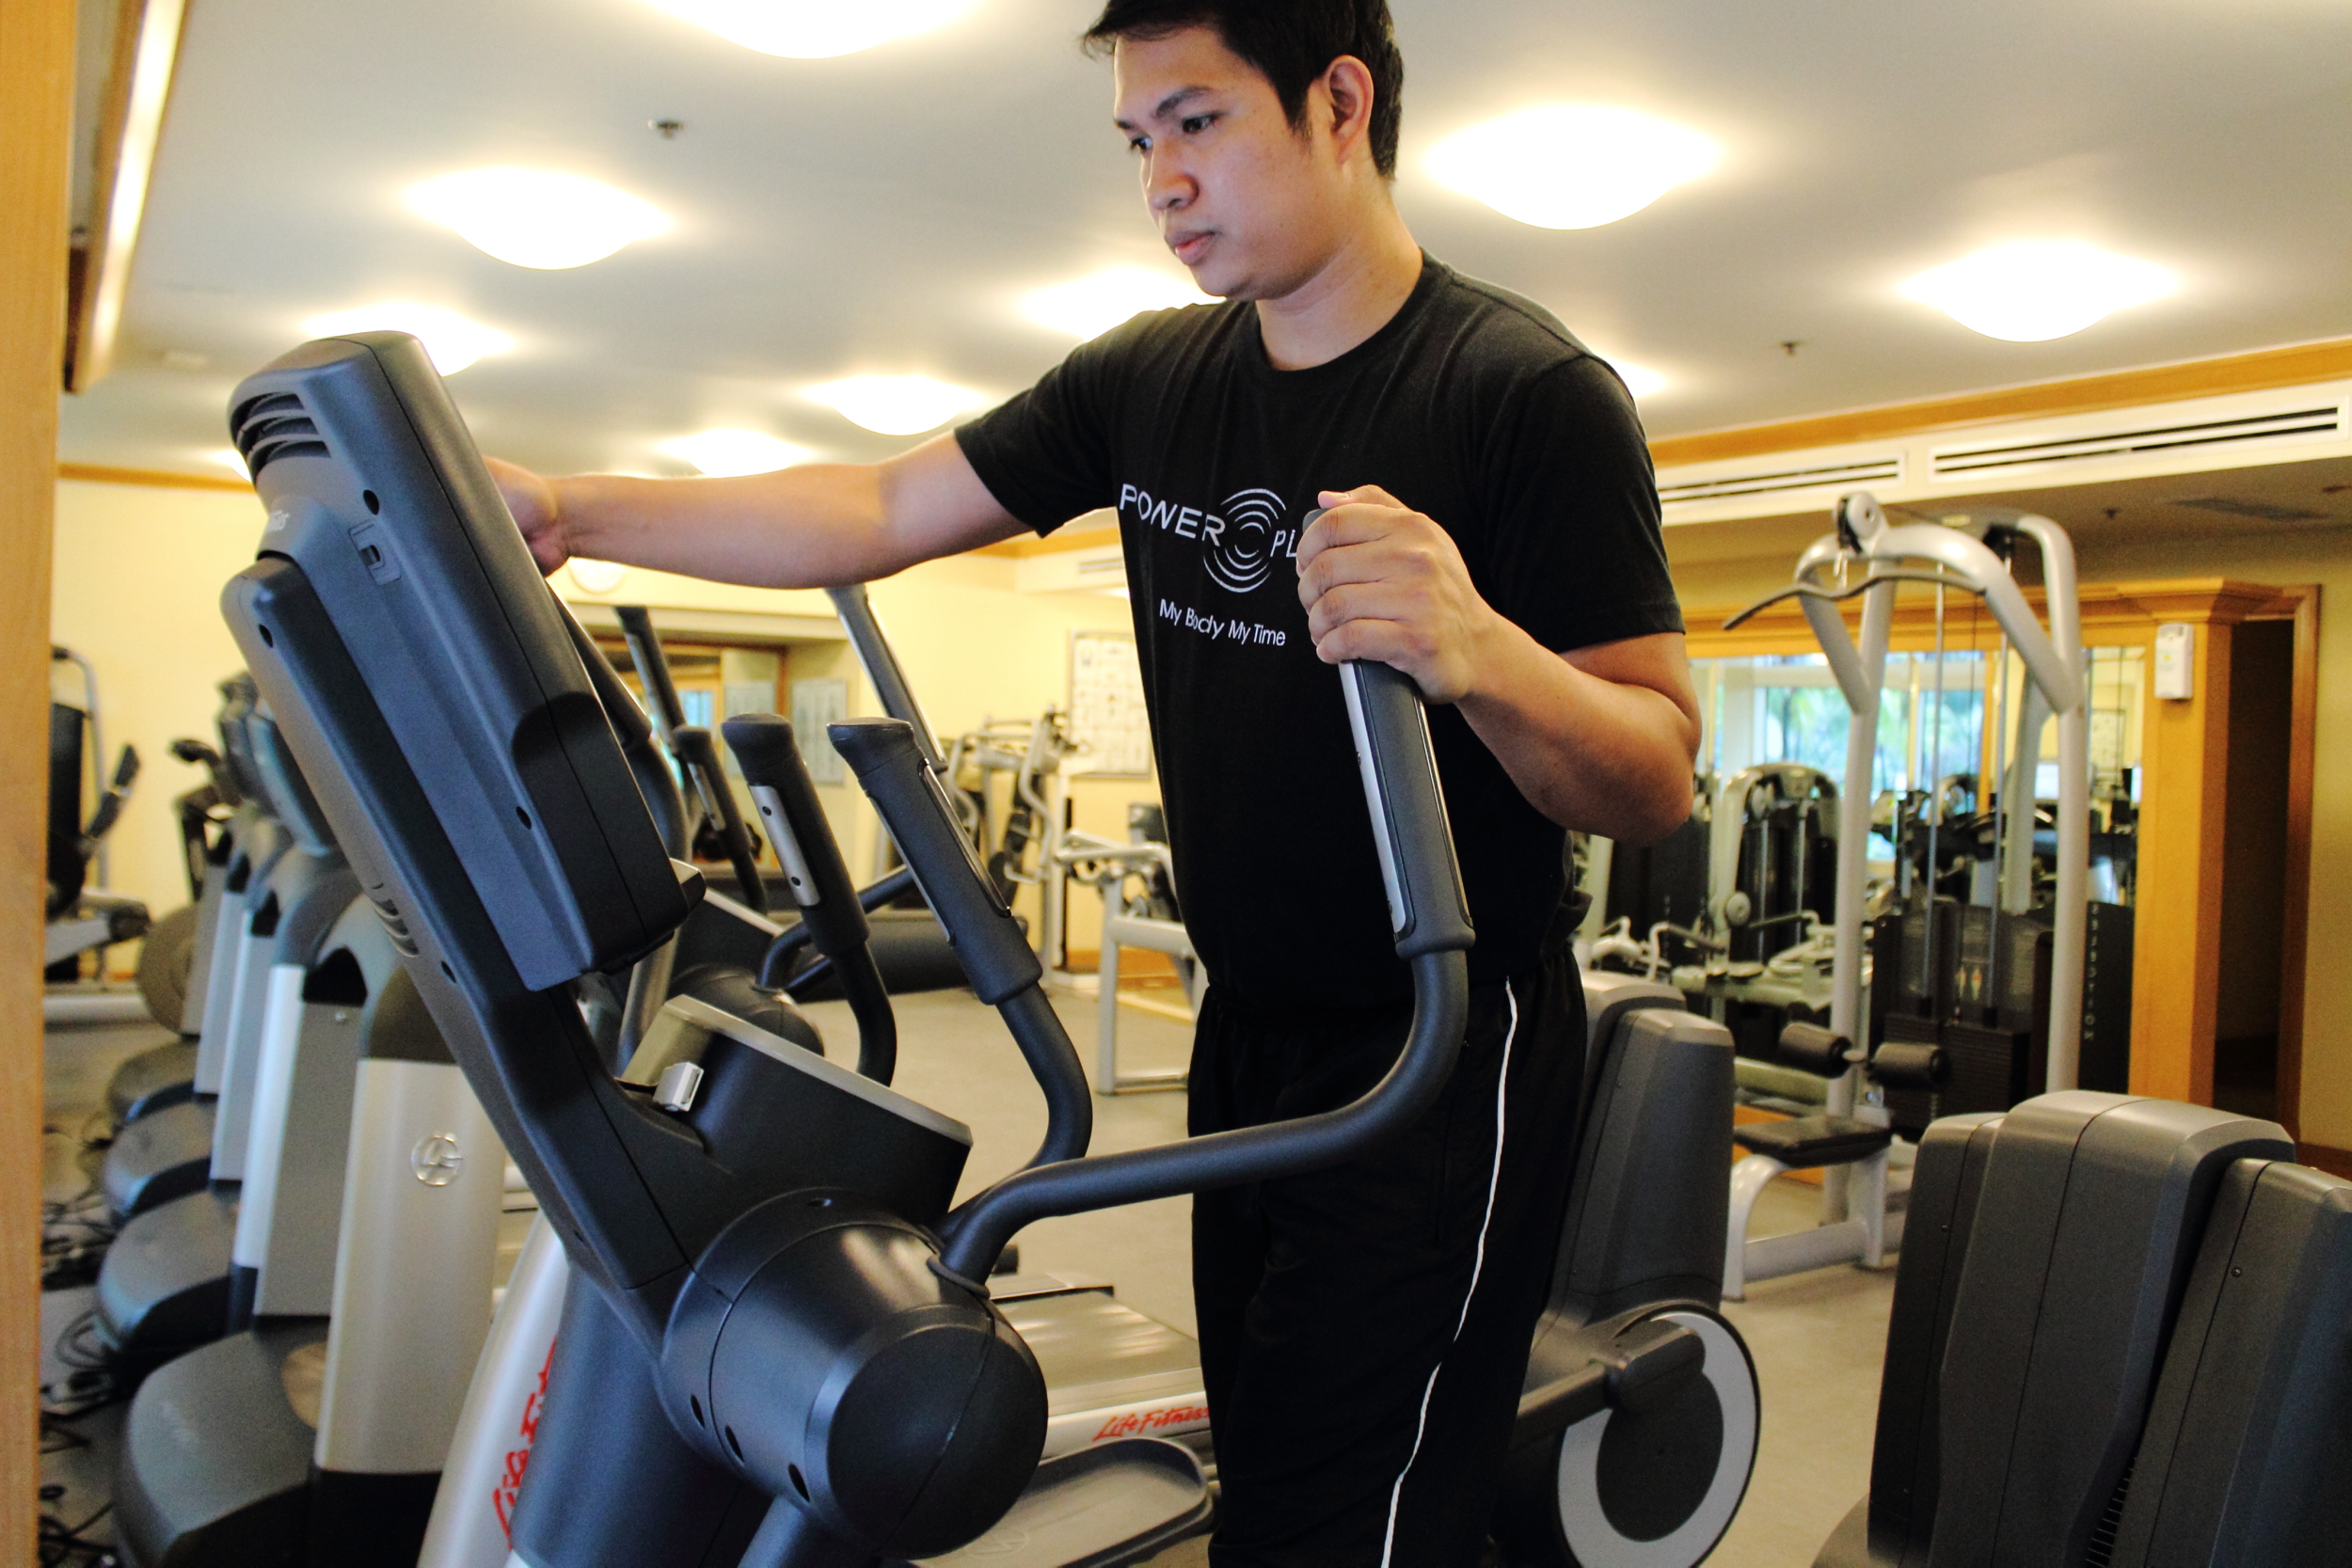 How To Use Gym Equipment Properly Anotherhackedlife Com